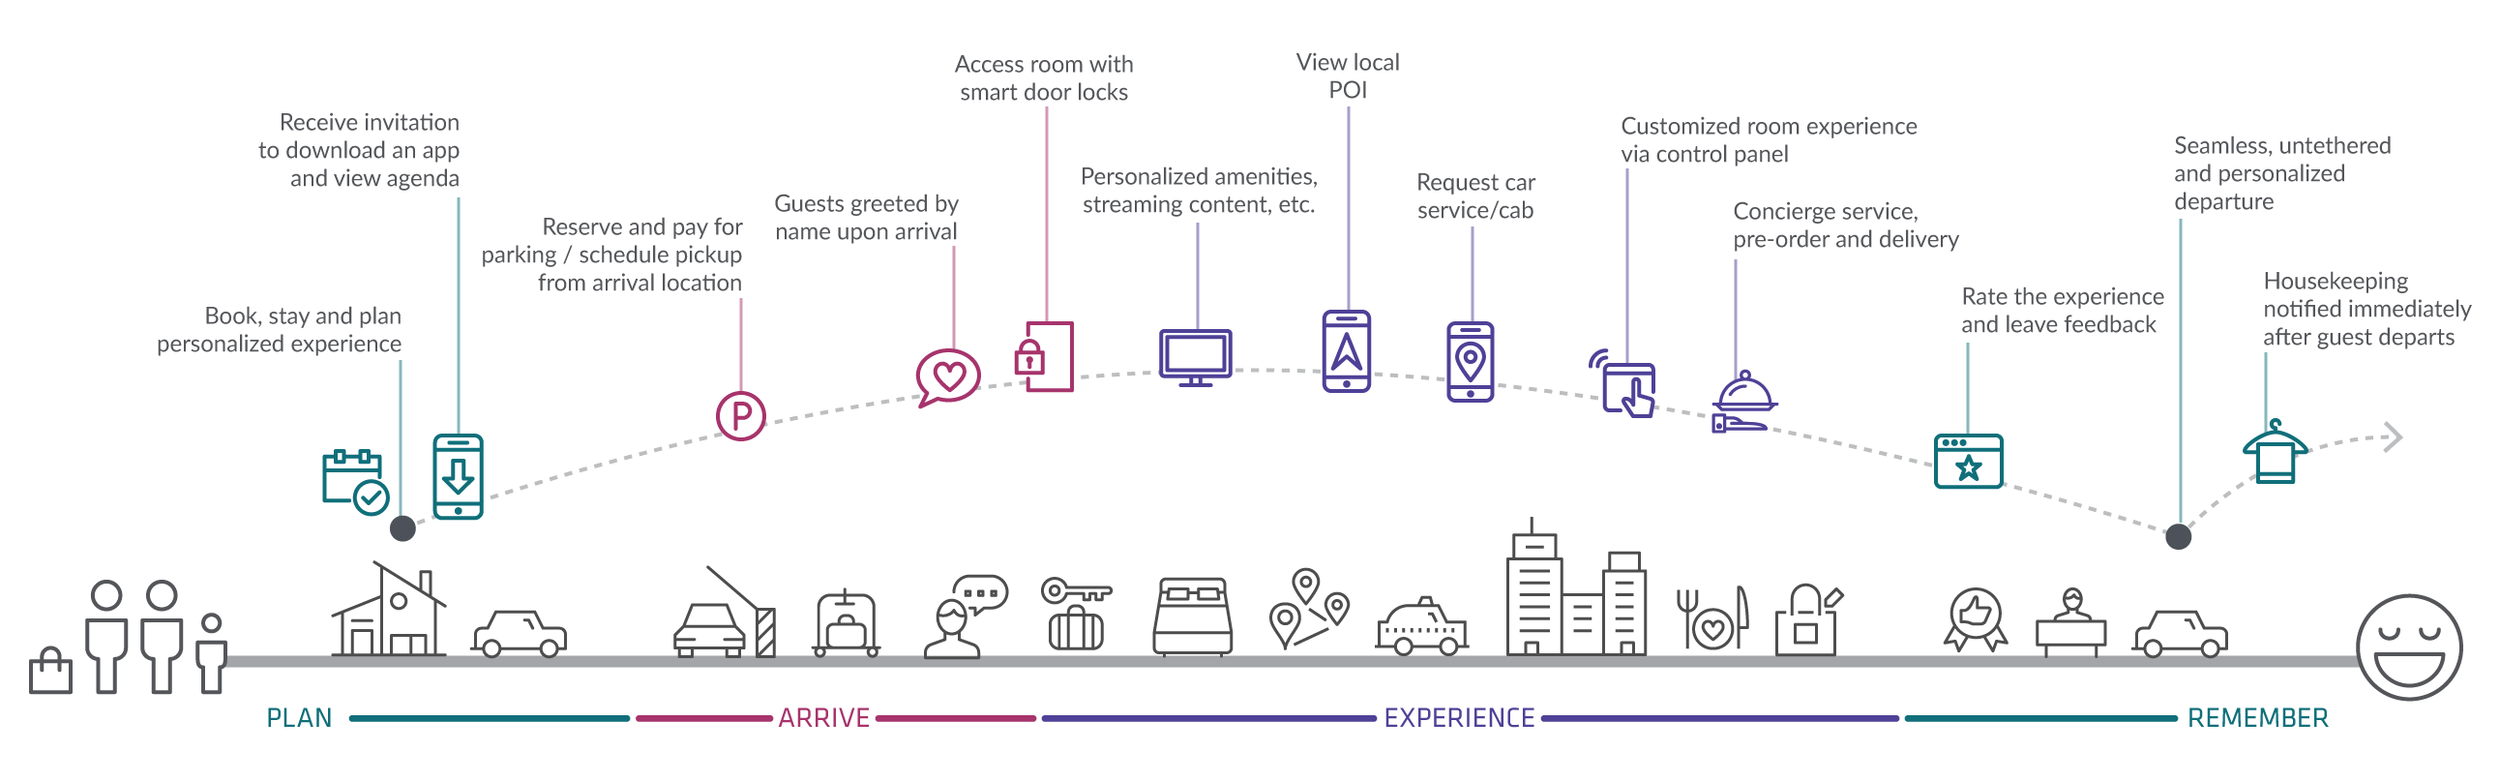 Plan, Arrive, Experience and Remember (PAER) applied to a hospitality experience